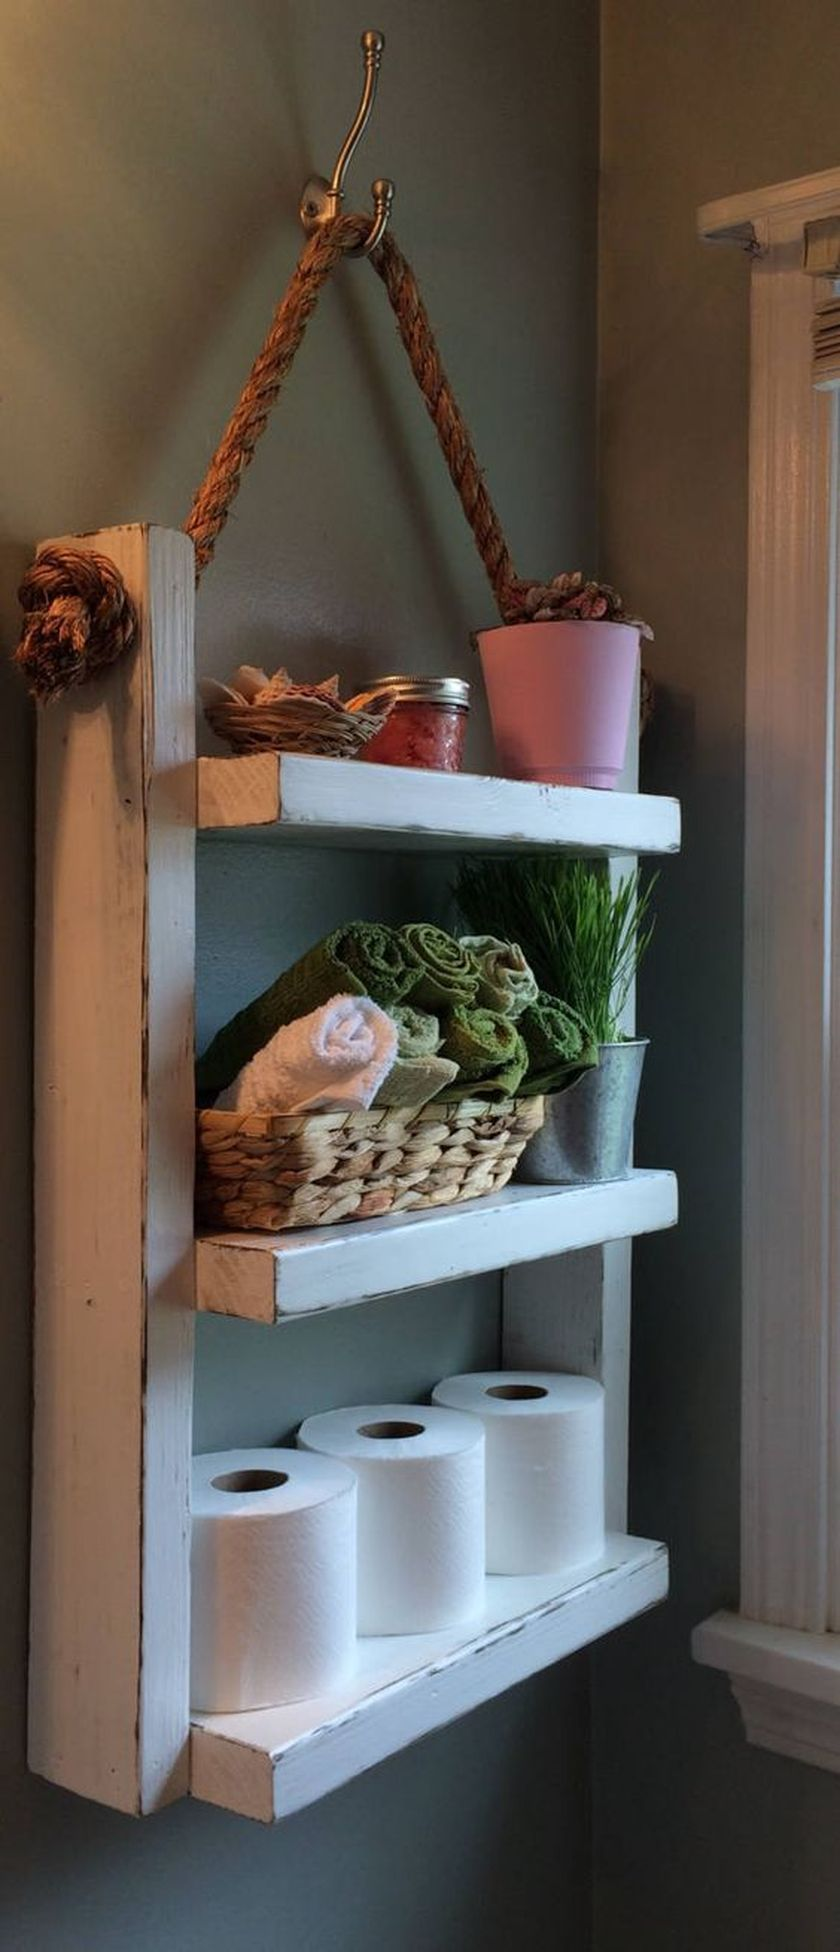 30 Rustic Country Bathroom Shelves Ideas That You Must Try  Https://decomg.com/30 Rustic Country Bathroom Shelves Ideas Must Try/